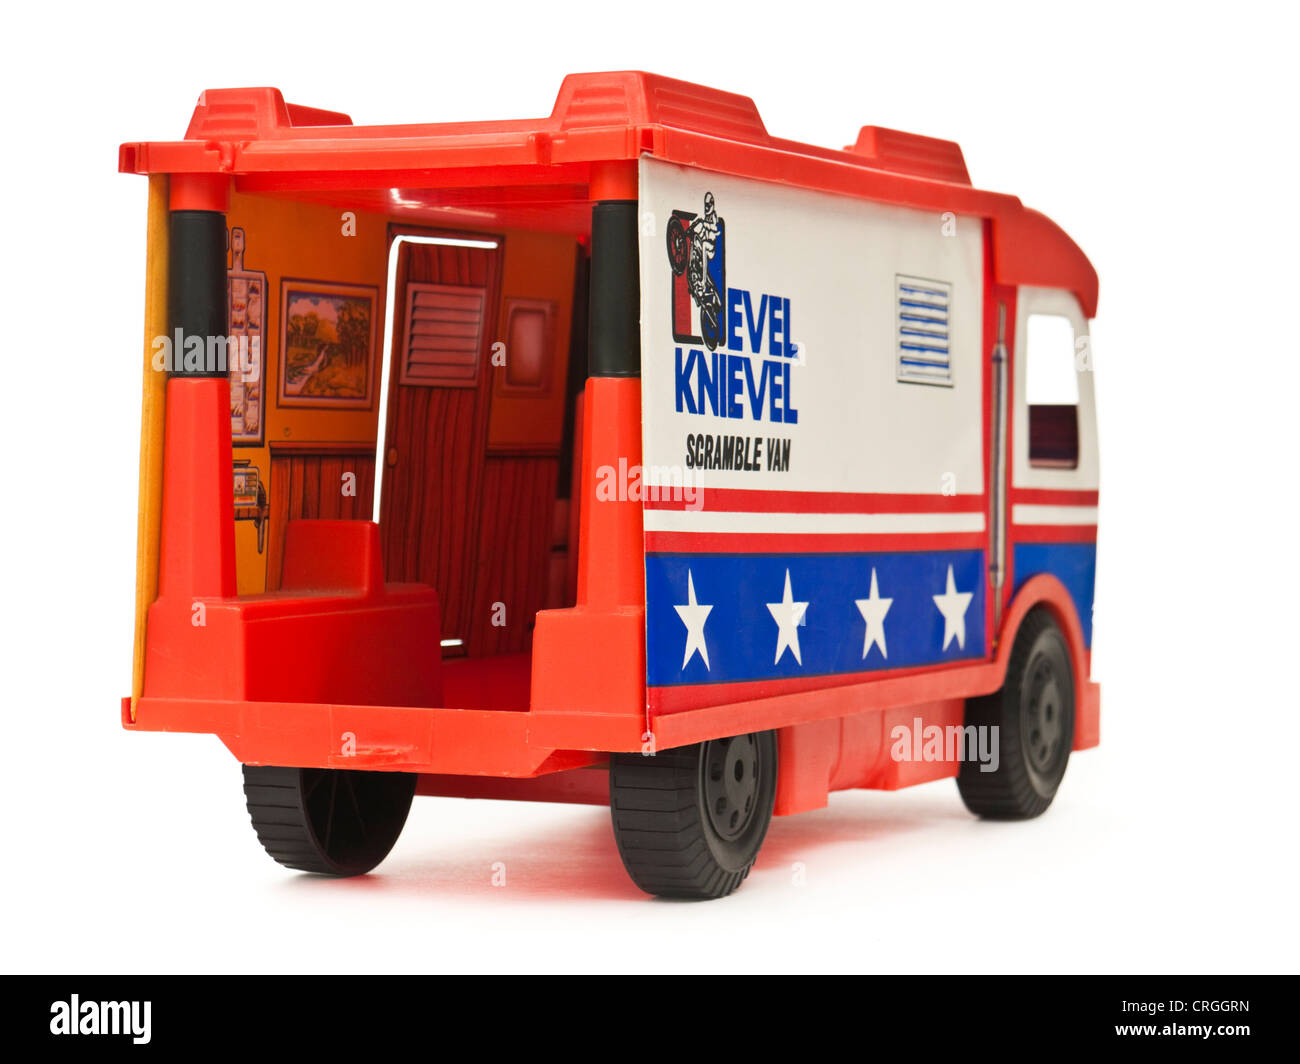 1973 Evel Knievel 'Scramble Van' toy by Ideal - Stock Image